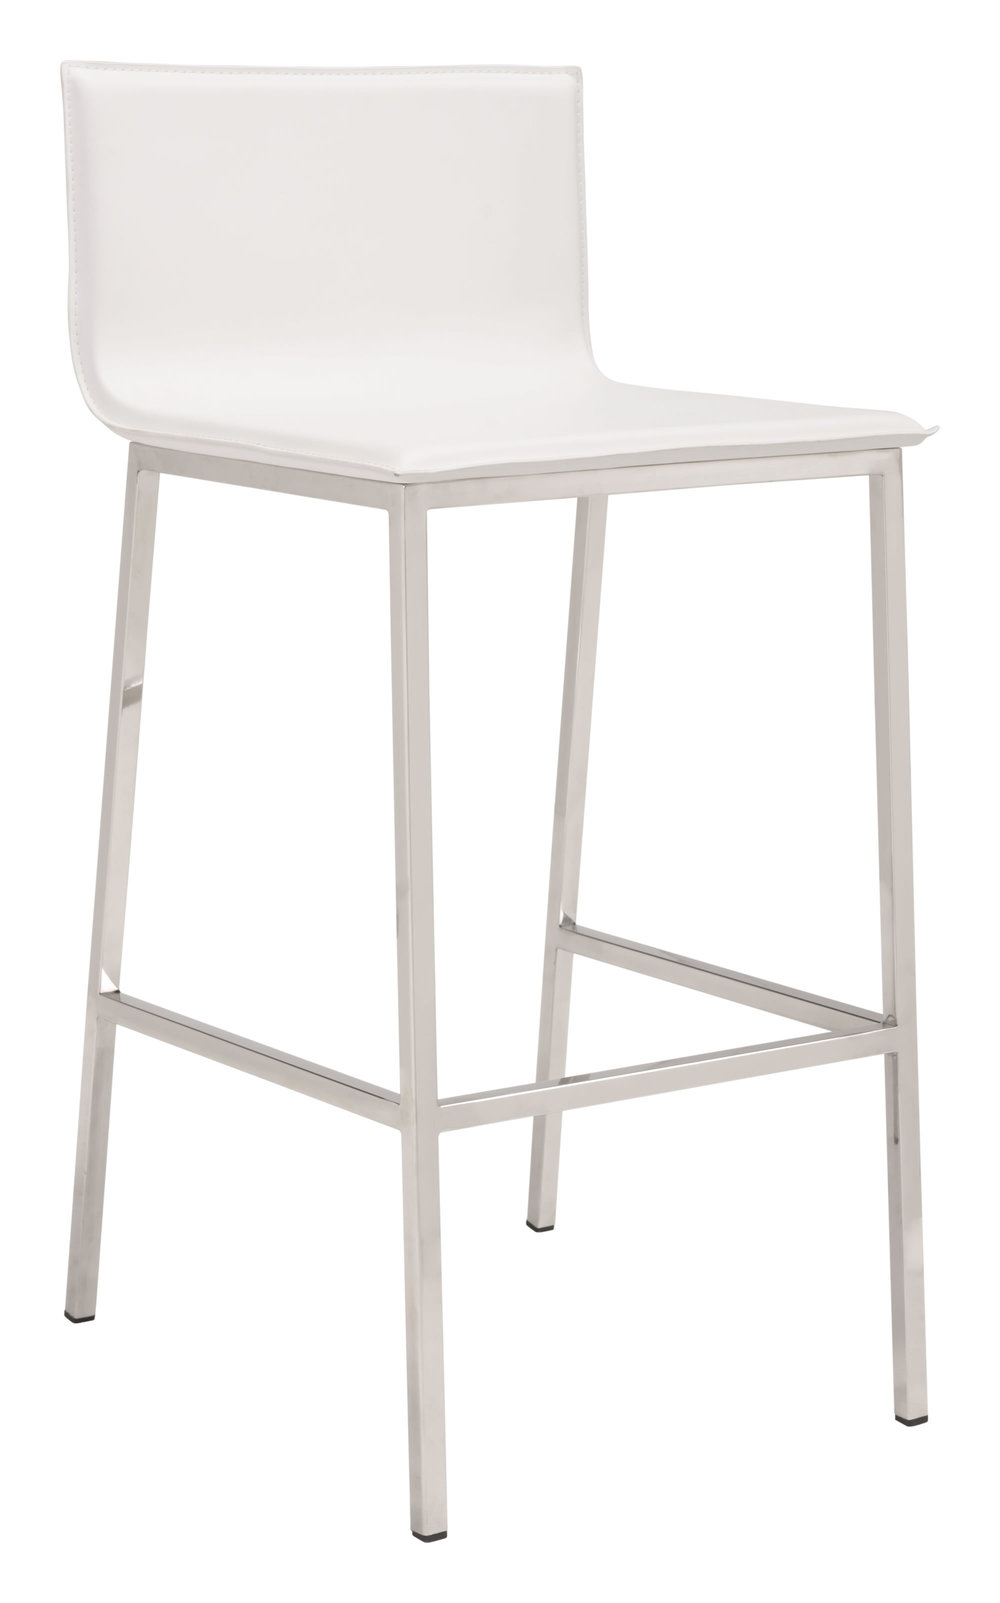 Zuo Modern Contemporary - Marina Barstool - Set of 2 - White